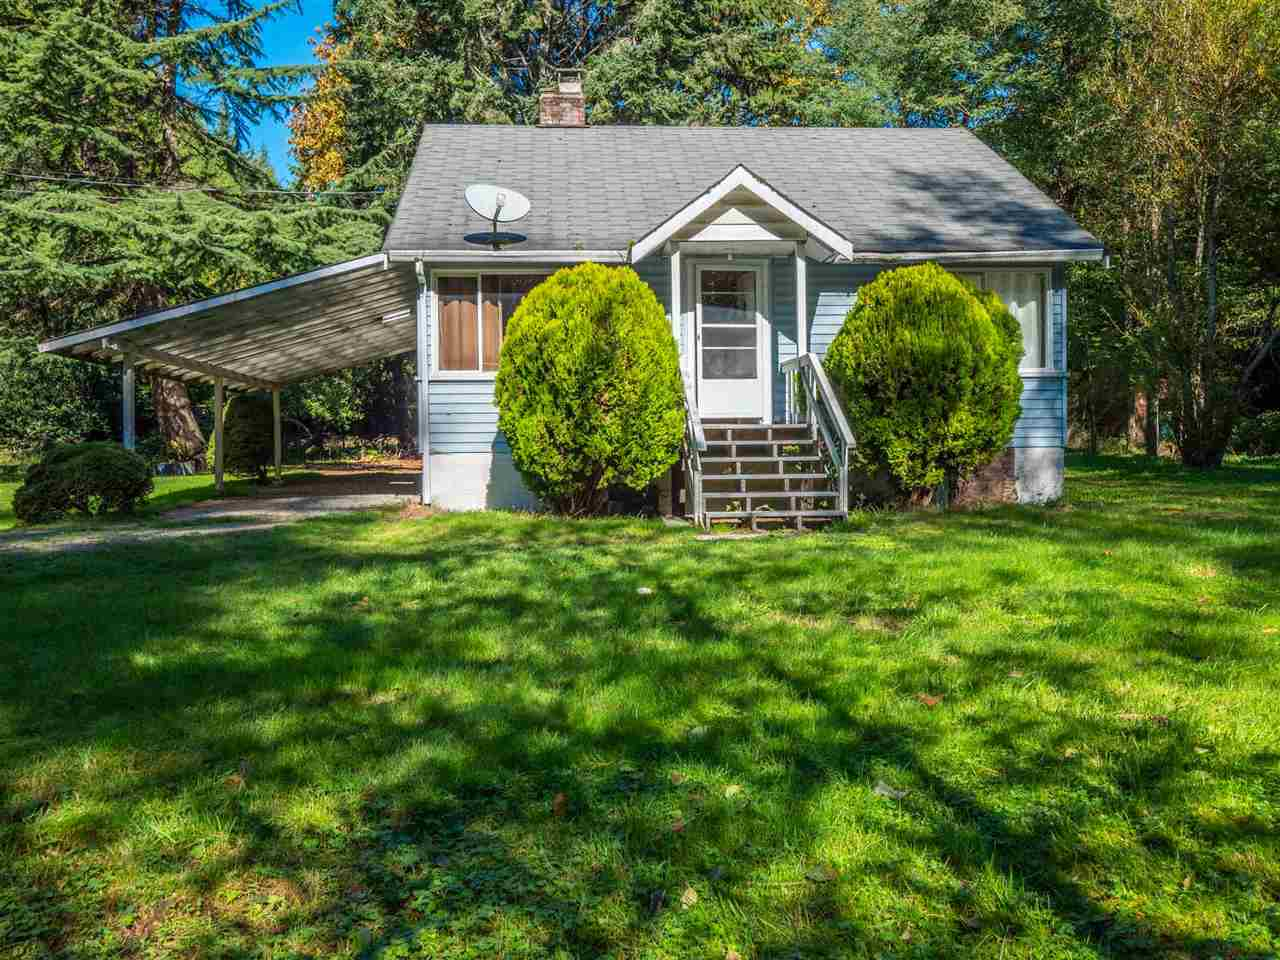 Gibsons & Area House with Acreage for sale: 2 bedroom Hardwood Floors 1,228 sq.ft.